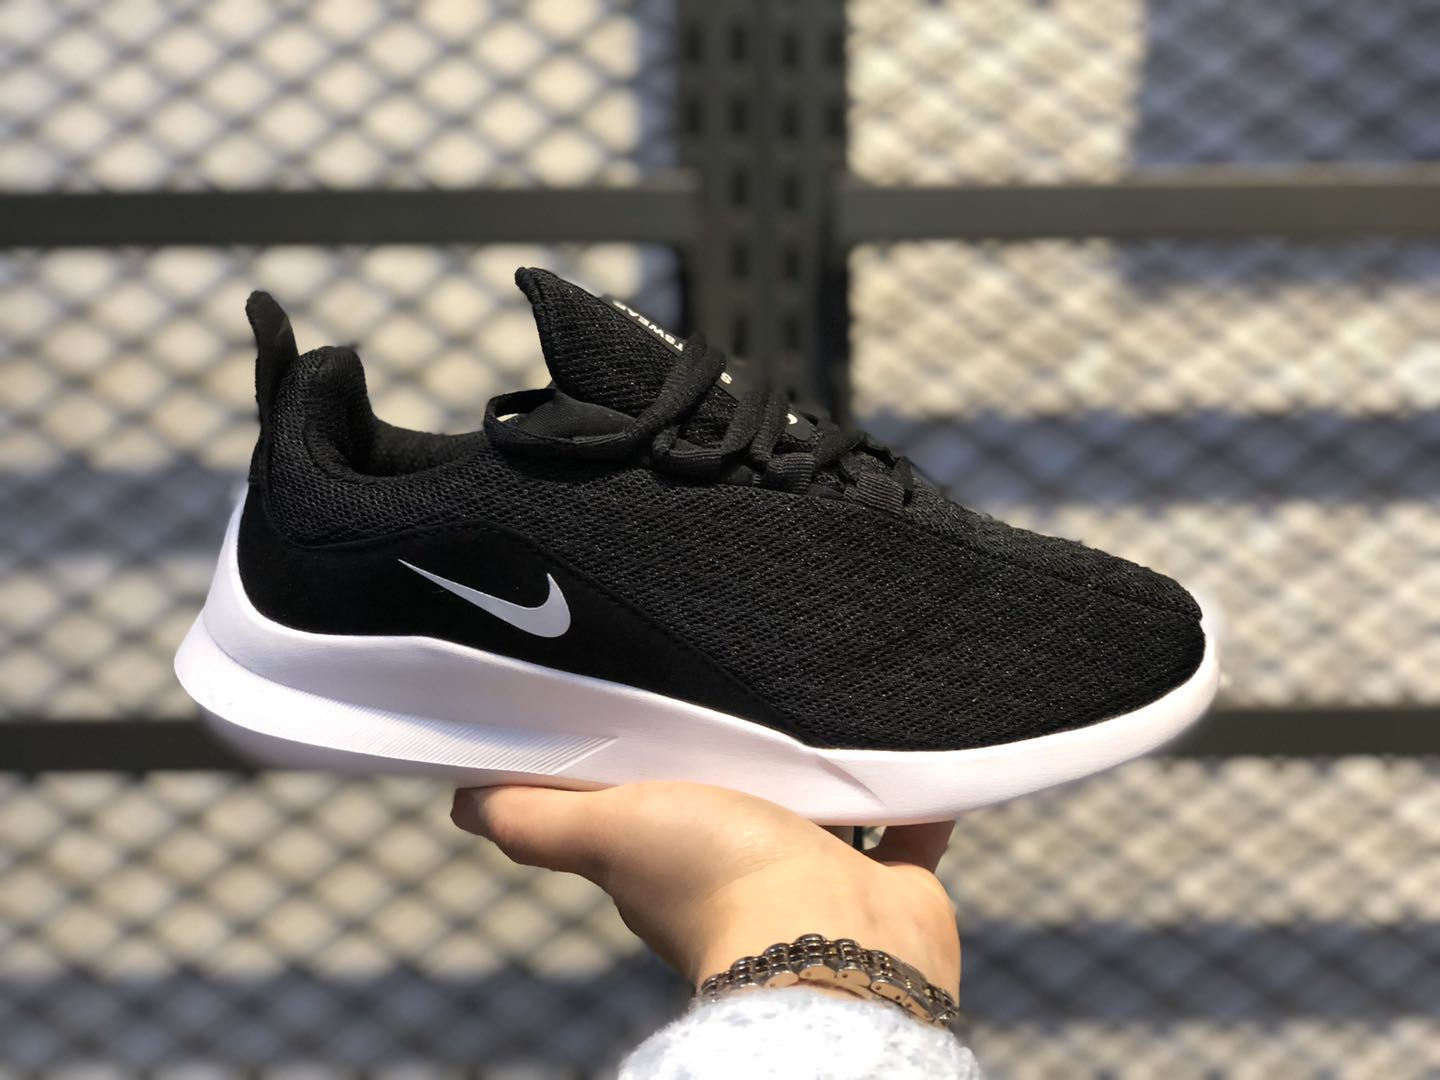 Nike Wmns Viale Black/White Running Shoes For Sale AA2181-002